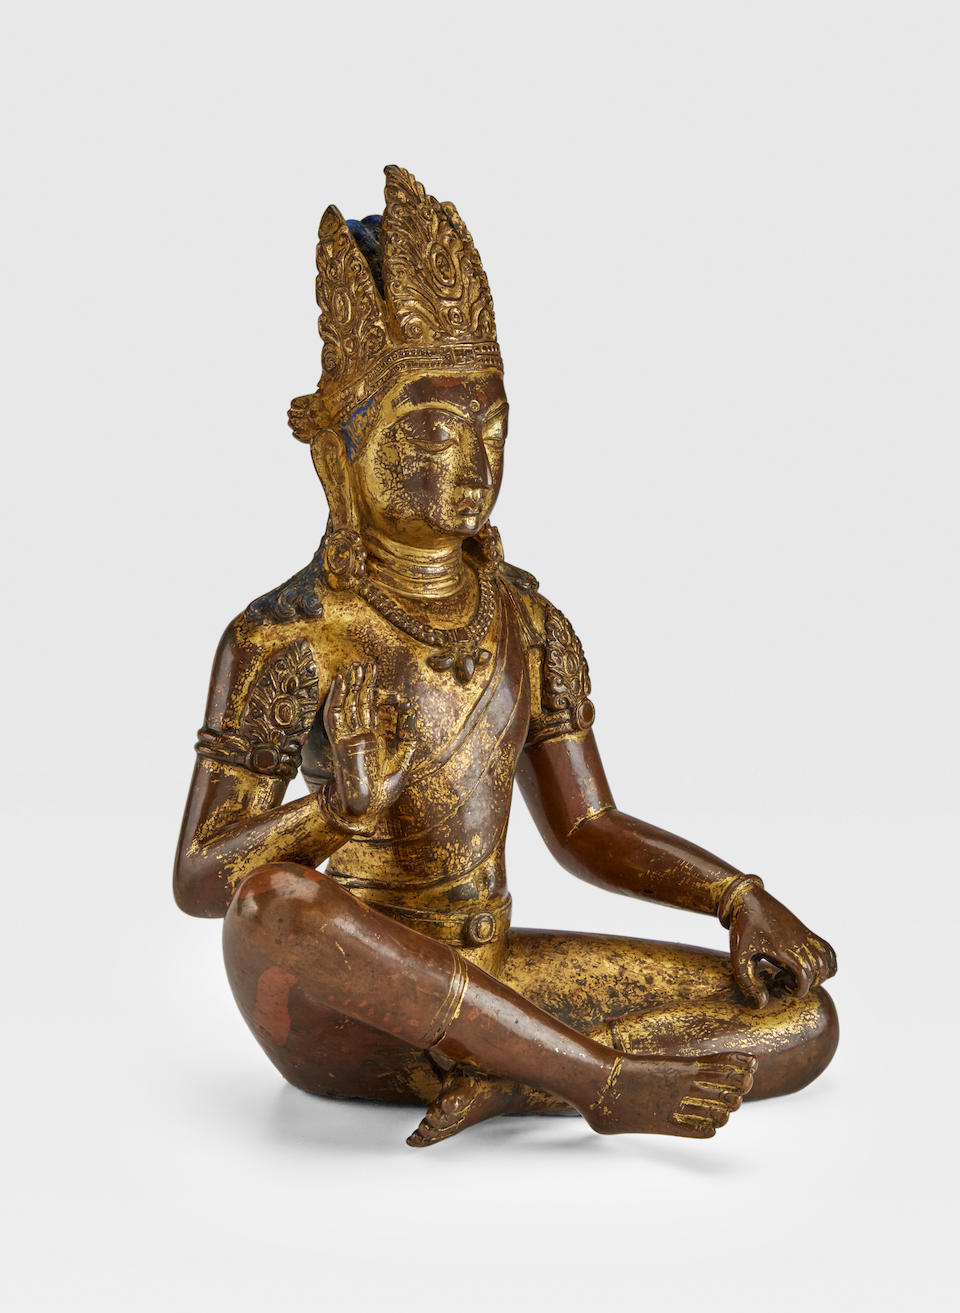 A GILT COPPER ALLOY FIGURE OF MANJUSHRI NEPAL, 9TH/10TH CENTURY